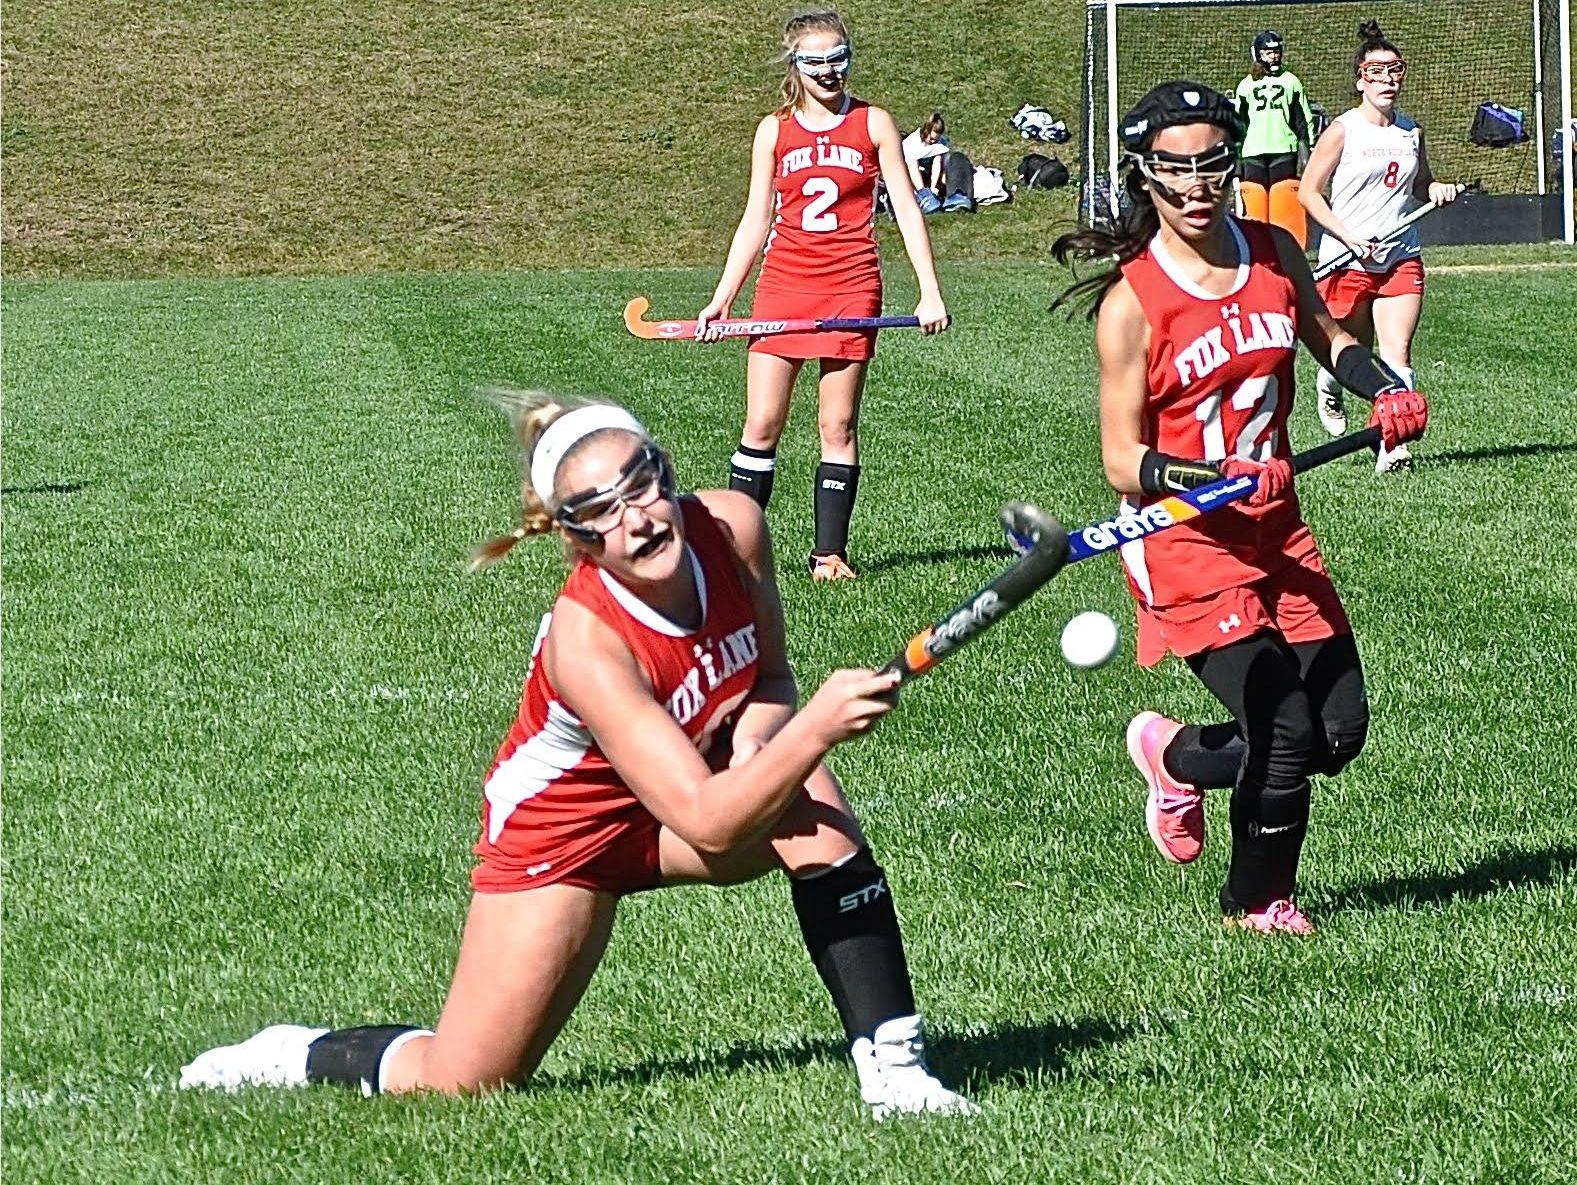 Fox Lane's Olivia Dey flips ball off corner. The flip was ruled dangerous and the play halted..